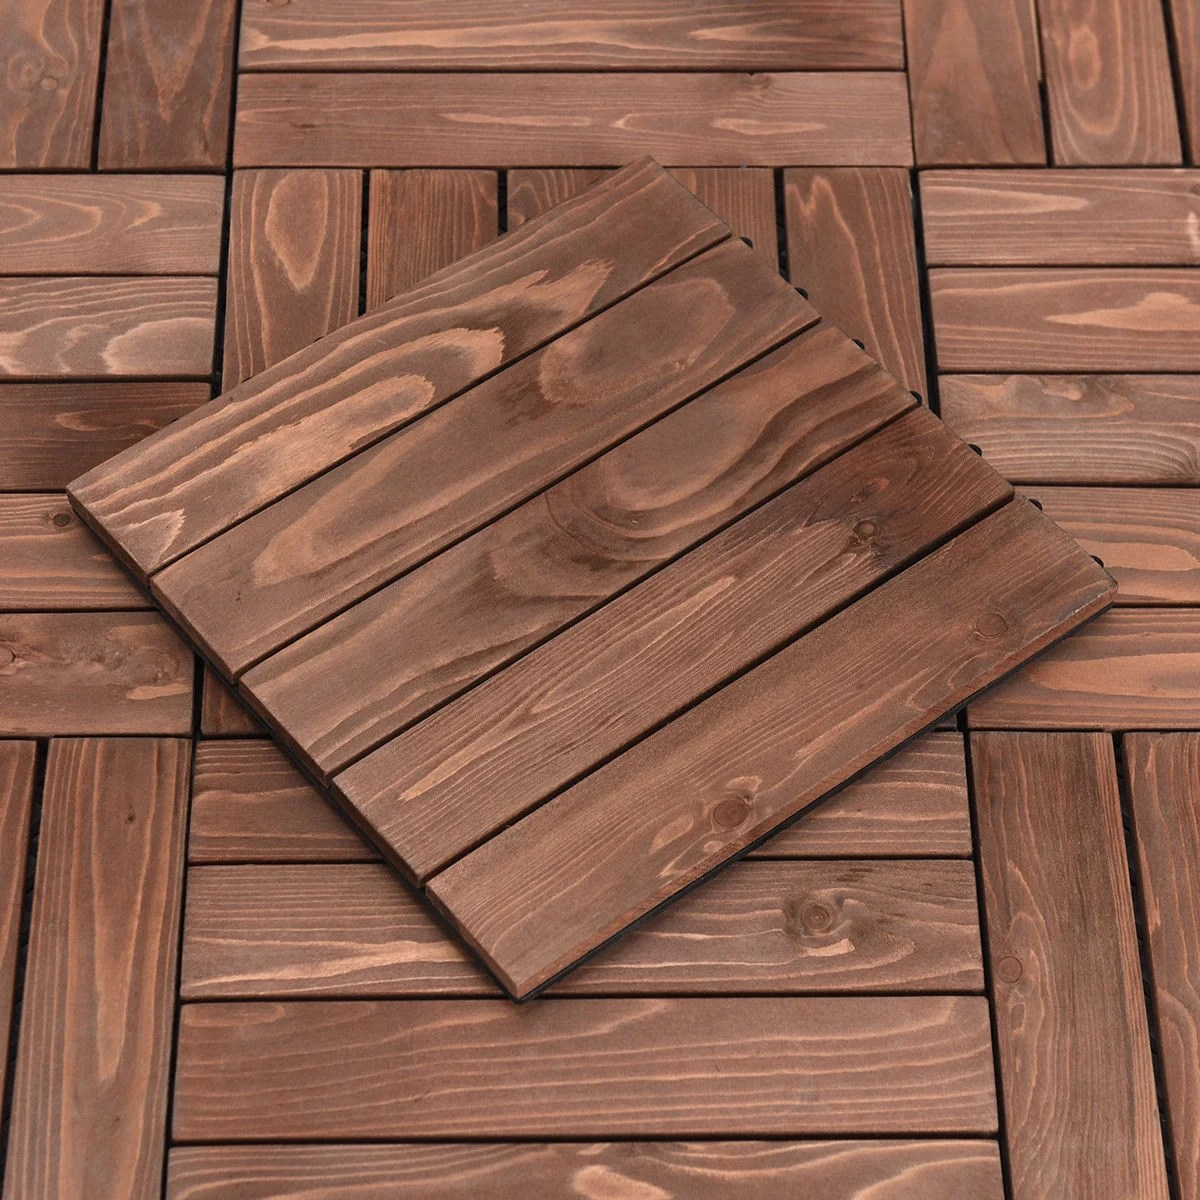 Interlocking Deck Tiles Costway 11pcs Deck Tiles Fir Wood Patio Pavers Interlocking Decking Flooring 12x12